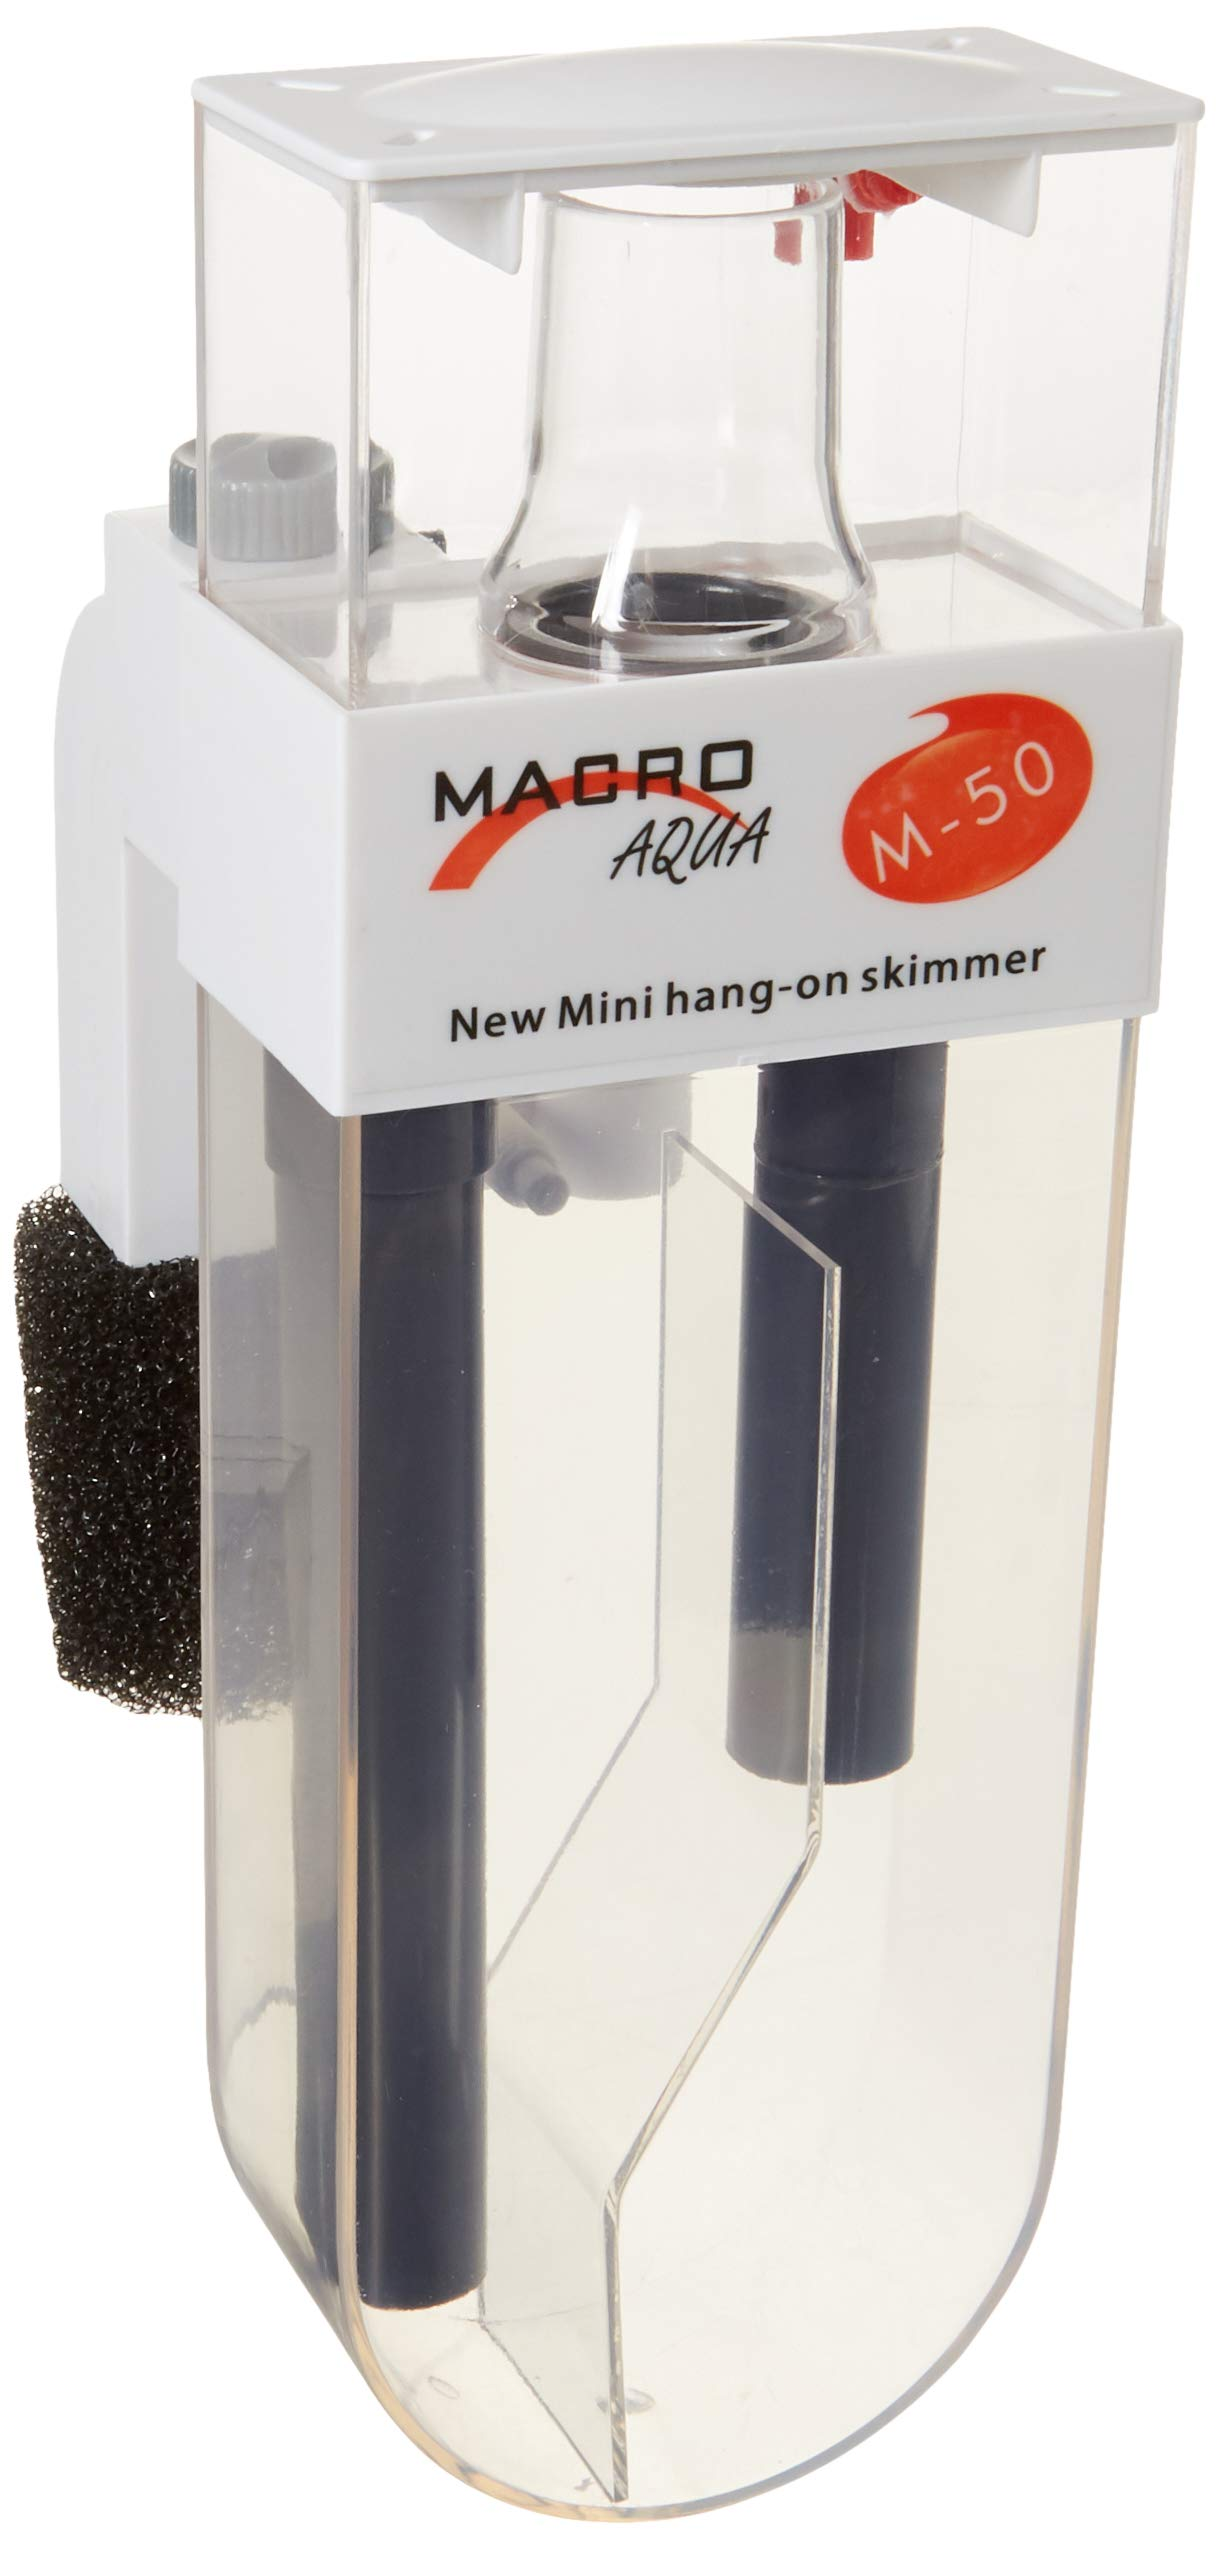 Macro Aqua M-50 Mini Hang-on External Protein Skimmer, 60 Gallon by Macro Aqua